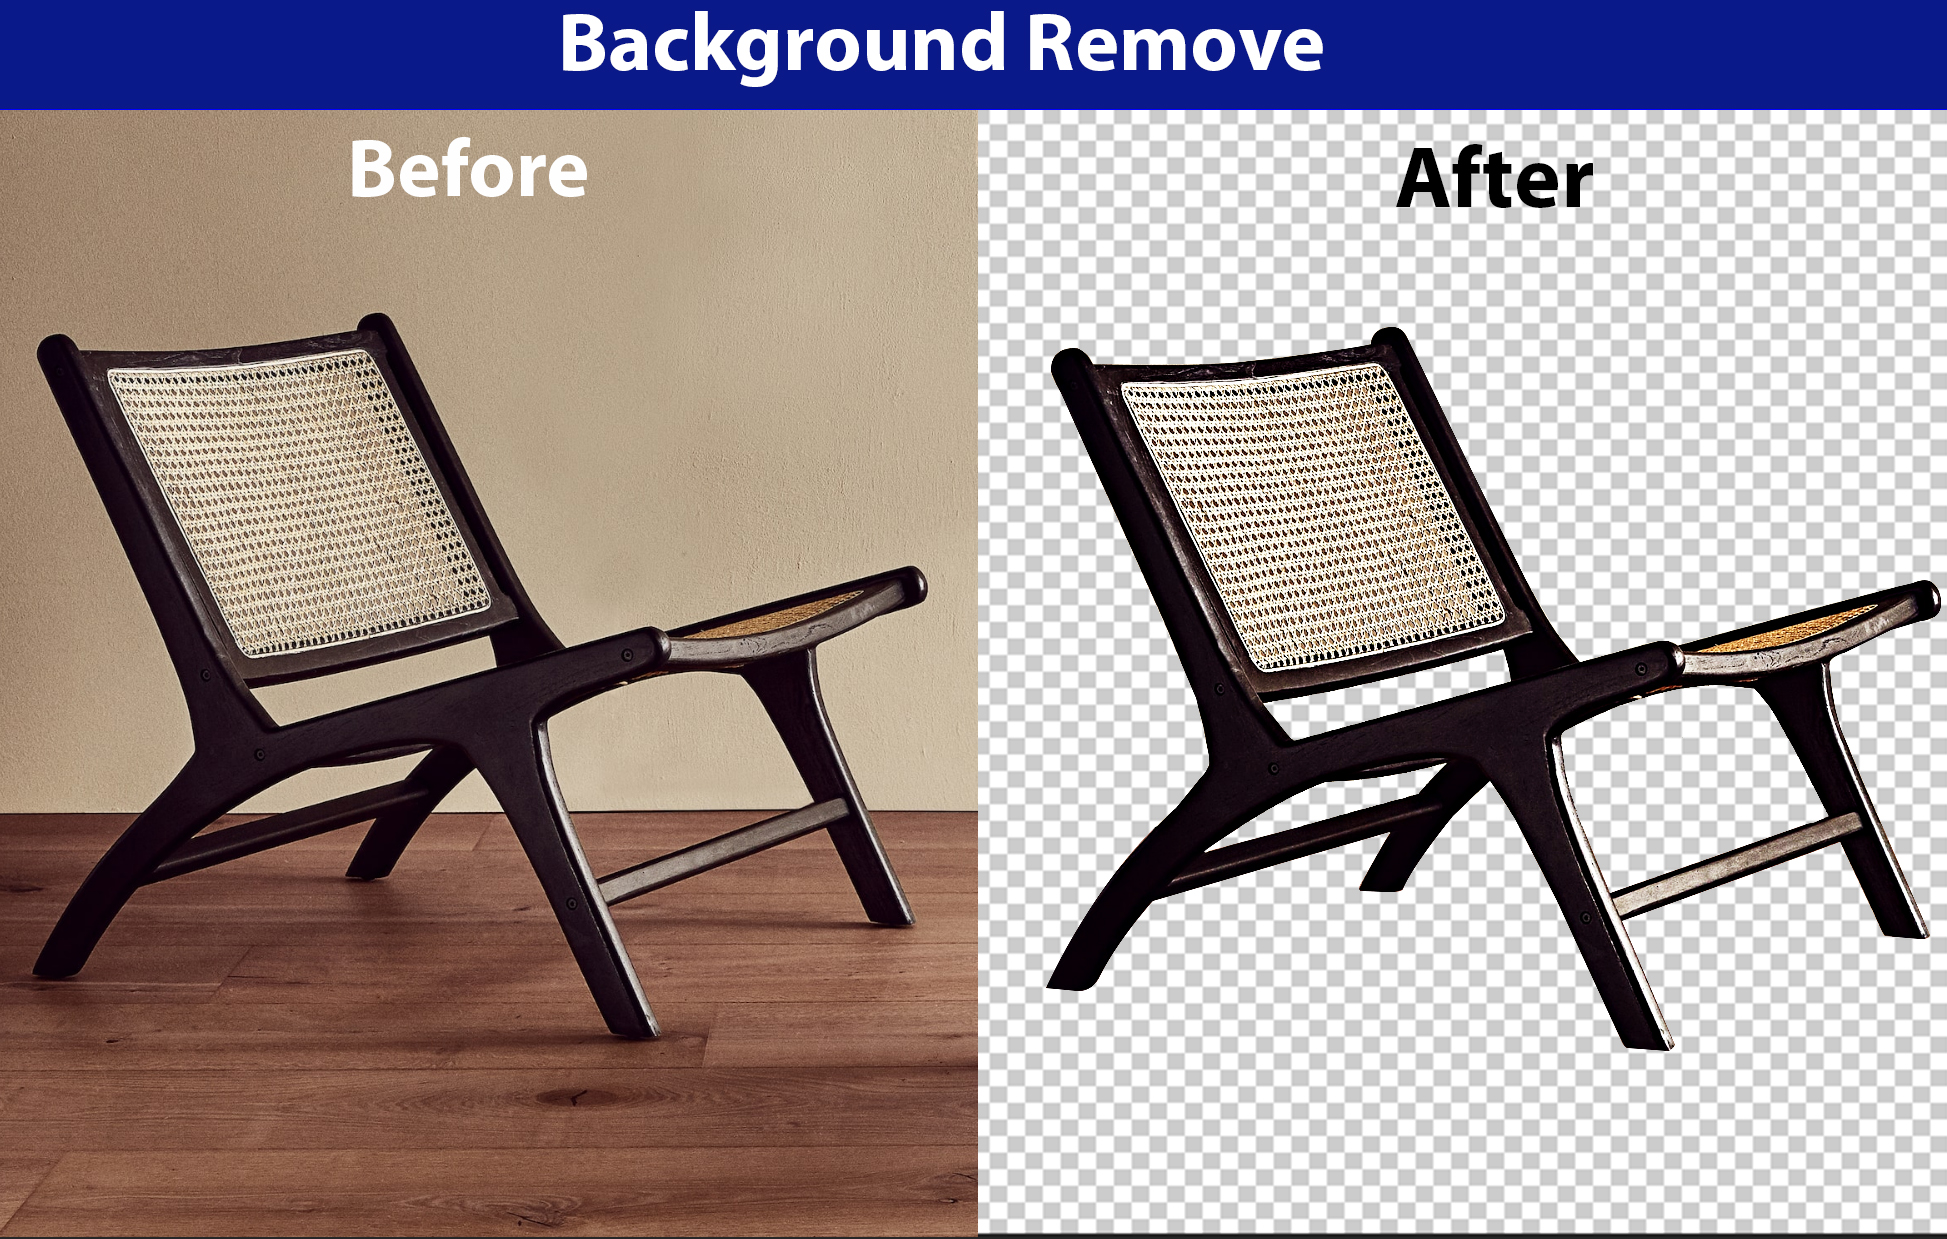 I will do photo editing,  background remove,  retouch,  resize,  professionally 5 image